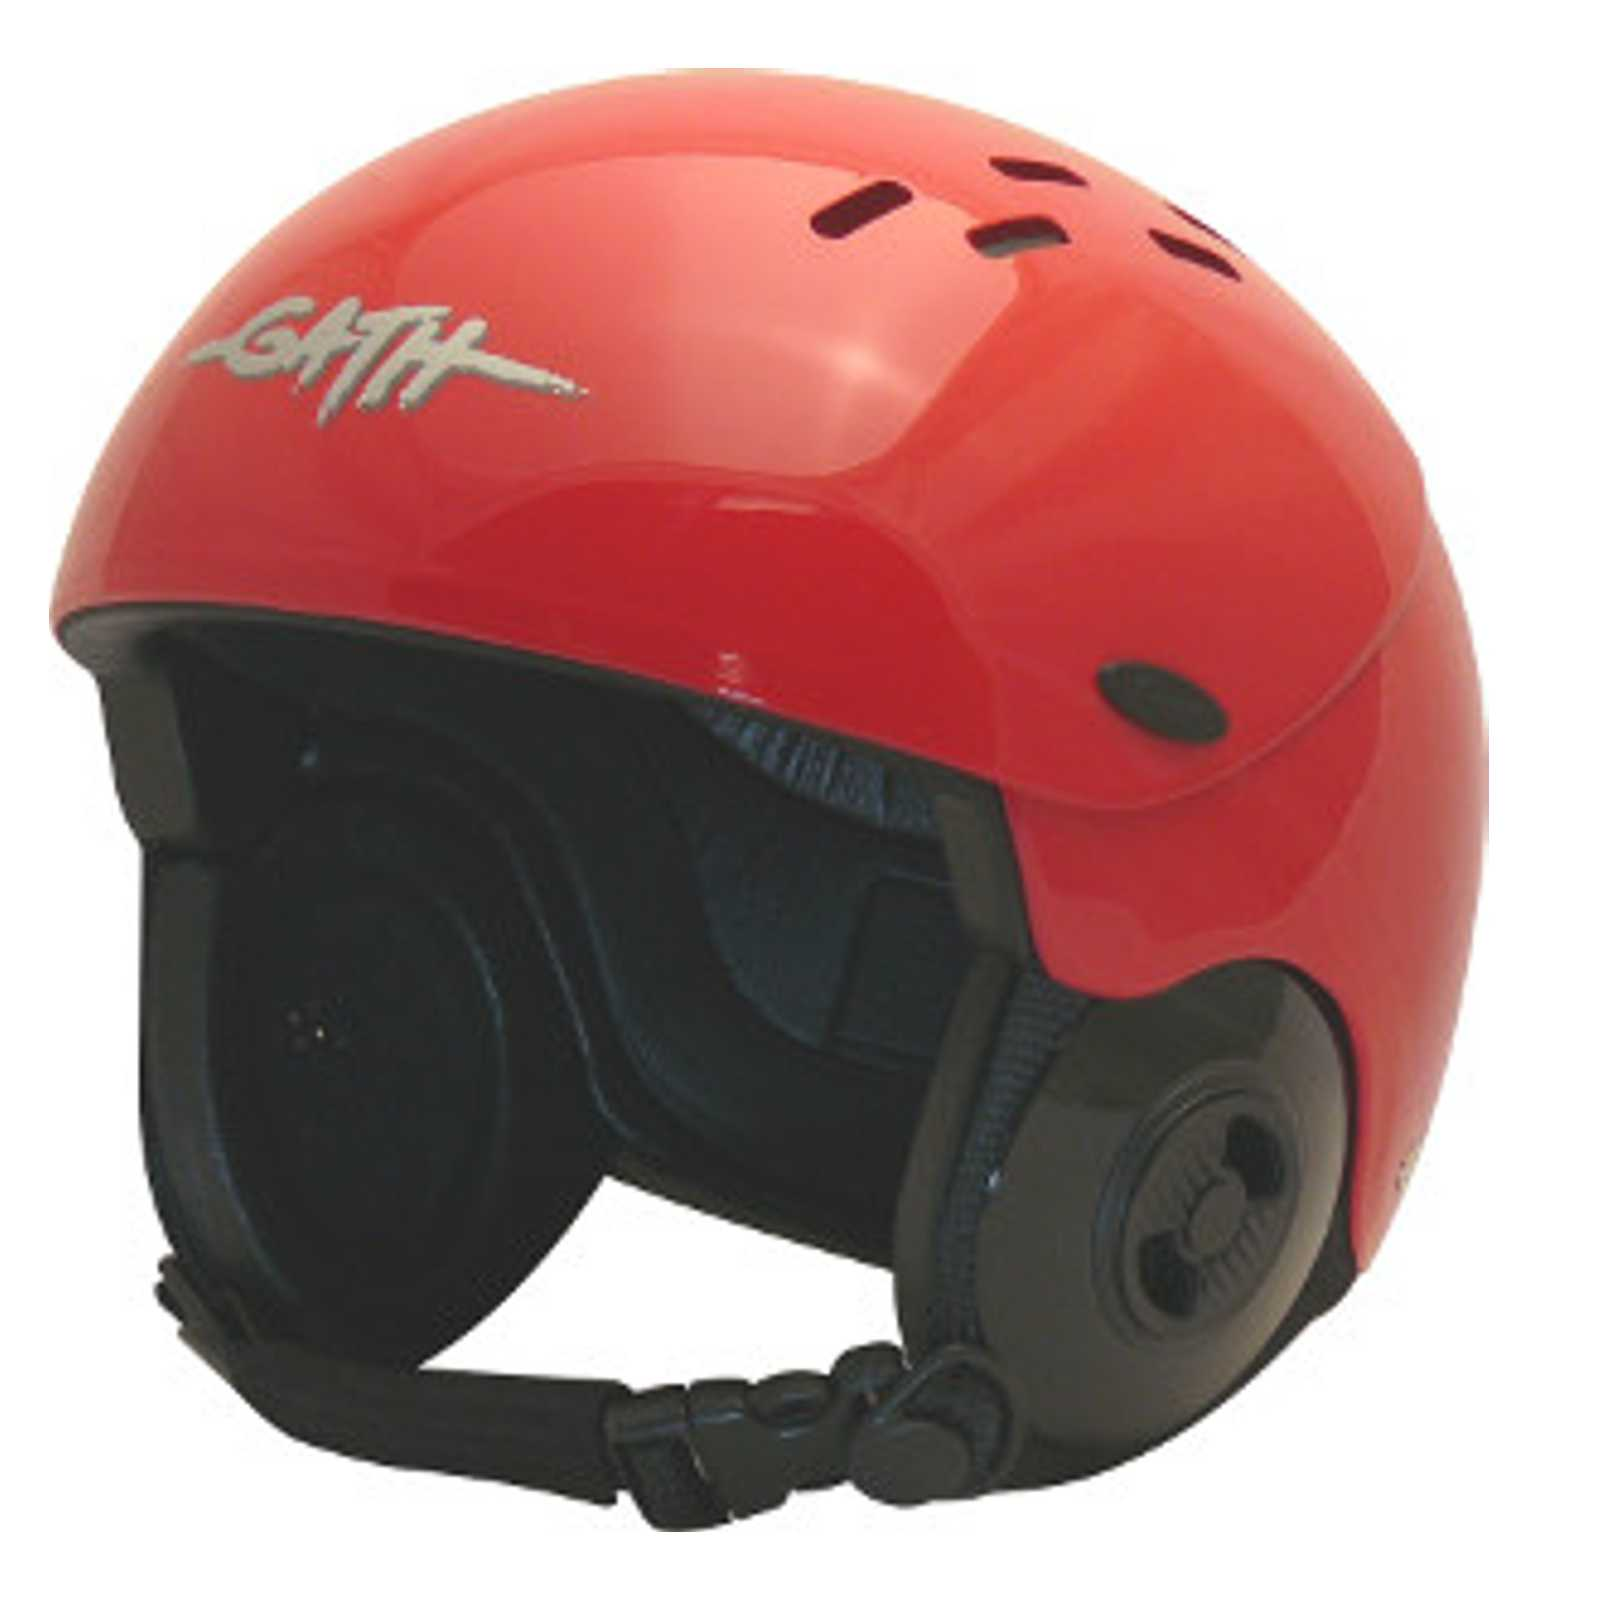 GATH Wassersport Helm GEDI Gr S Rot Safety Red